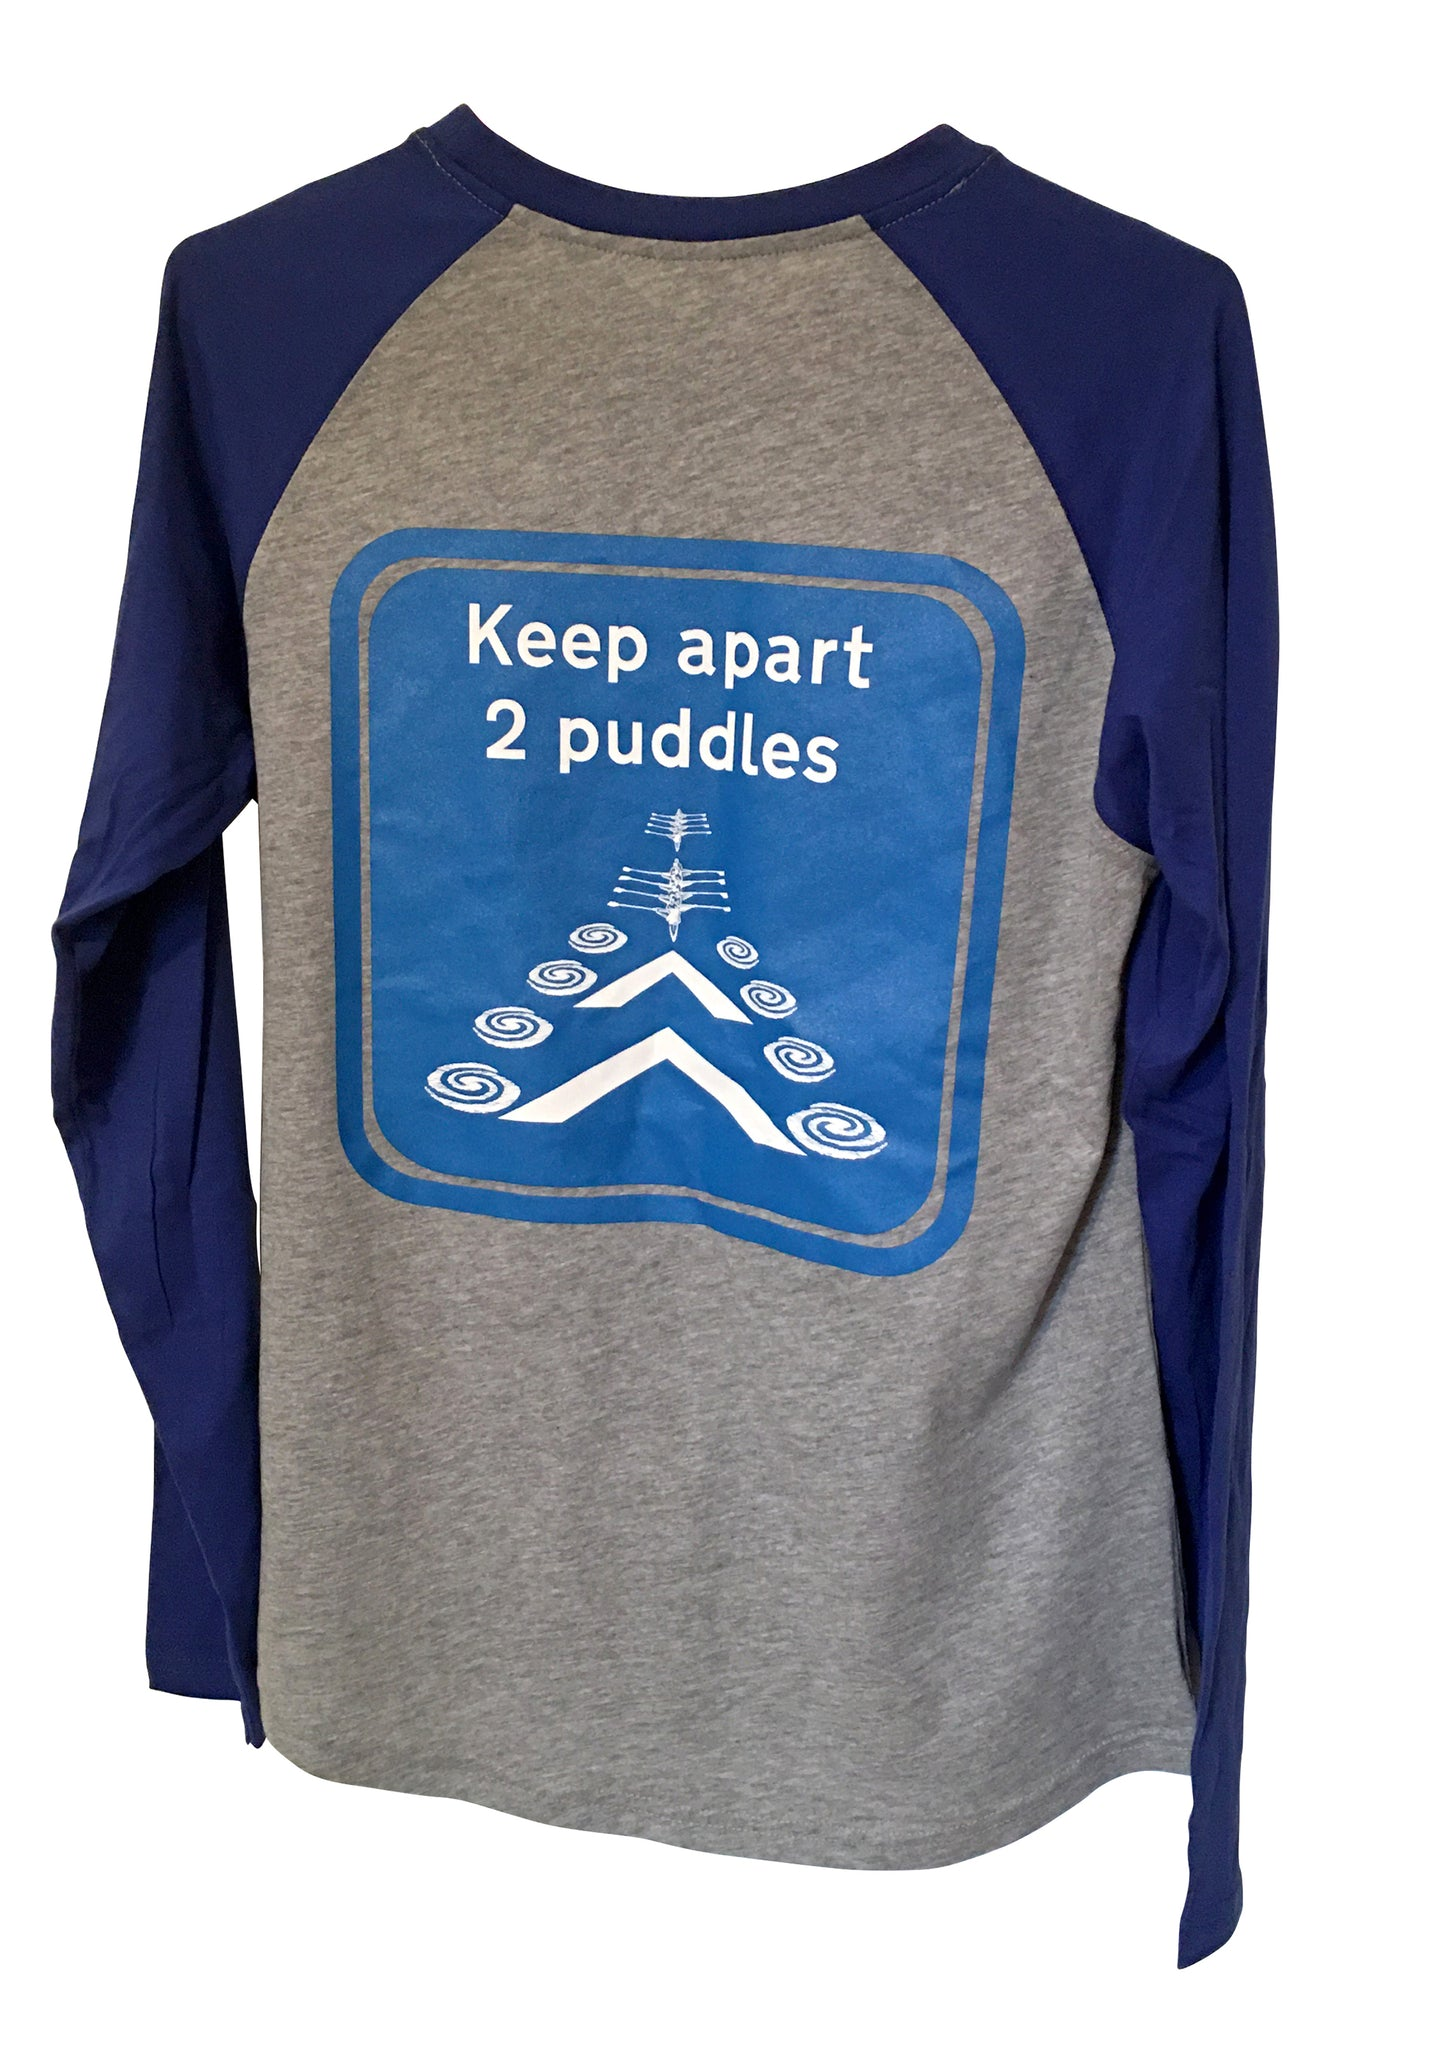 Socially Distanced Puddles - Long Sleeve Tee